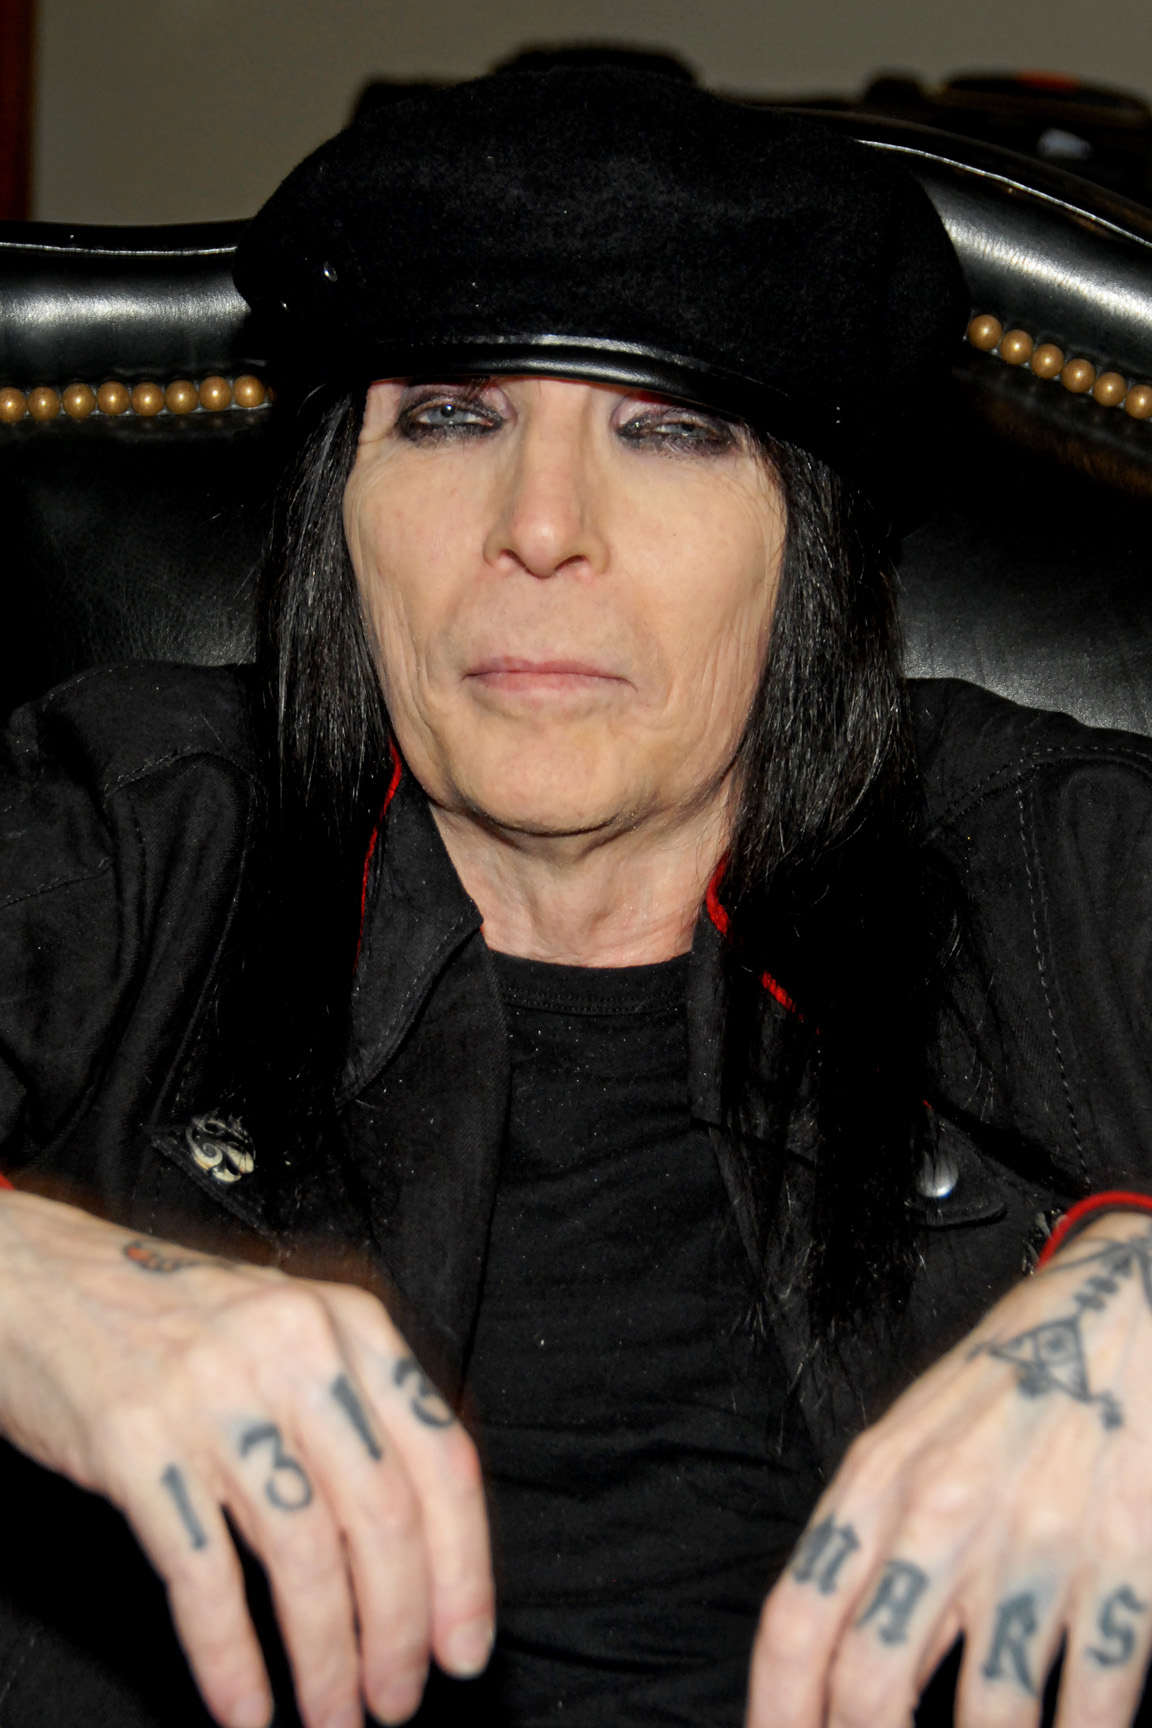 how tall is mick mars